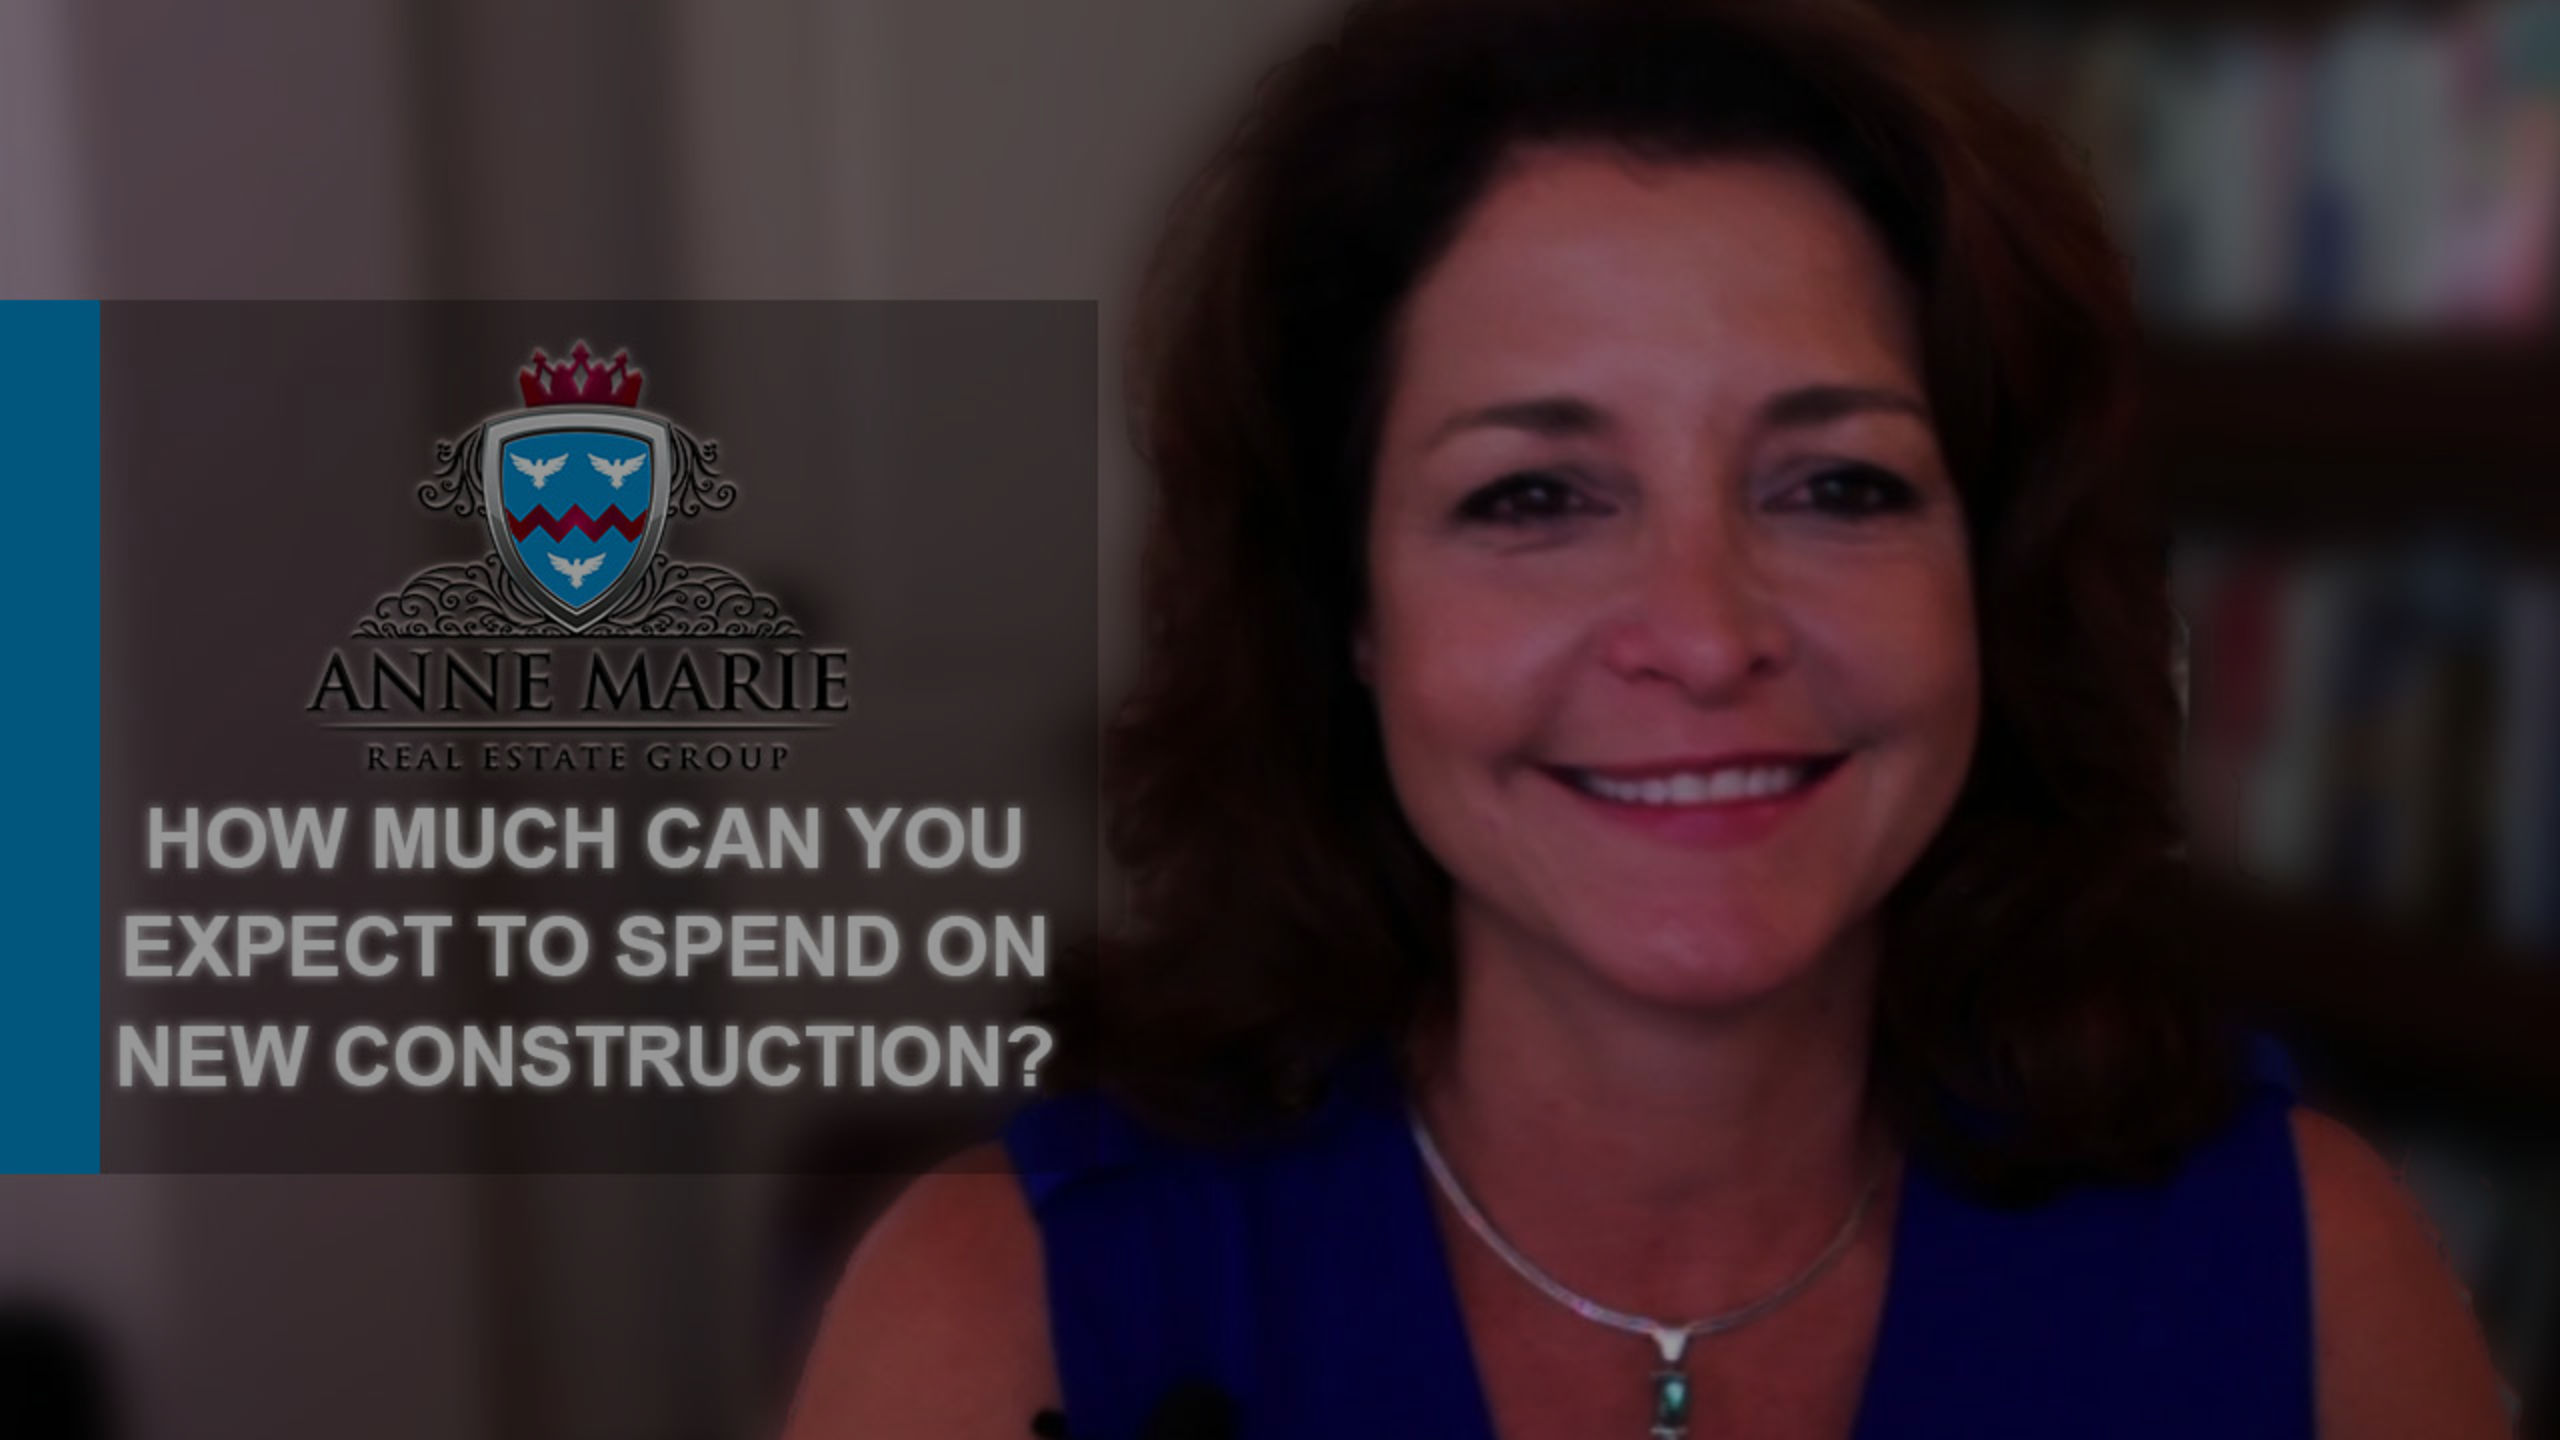 How Much Can You Expect to Spend on New Construction?